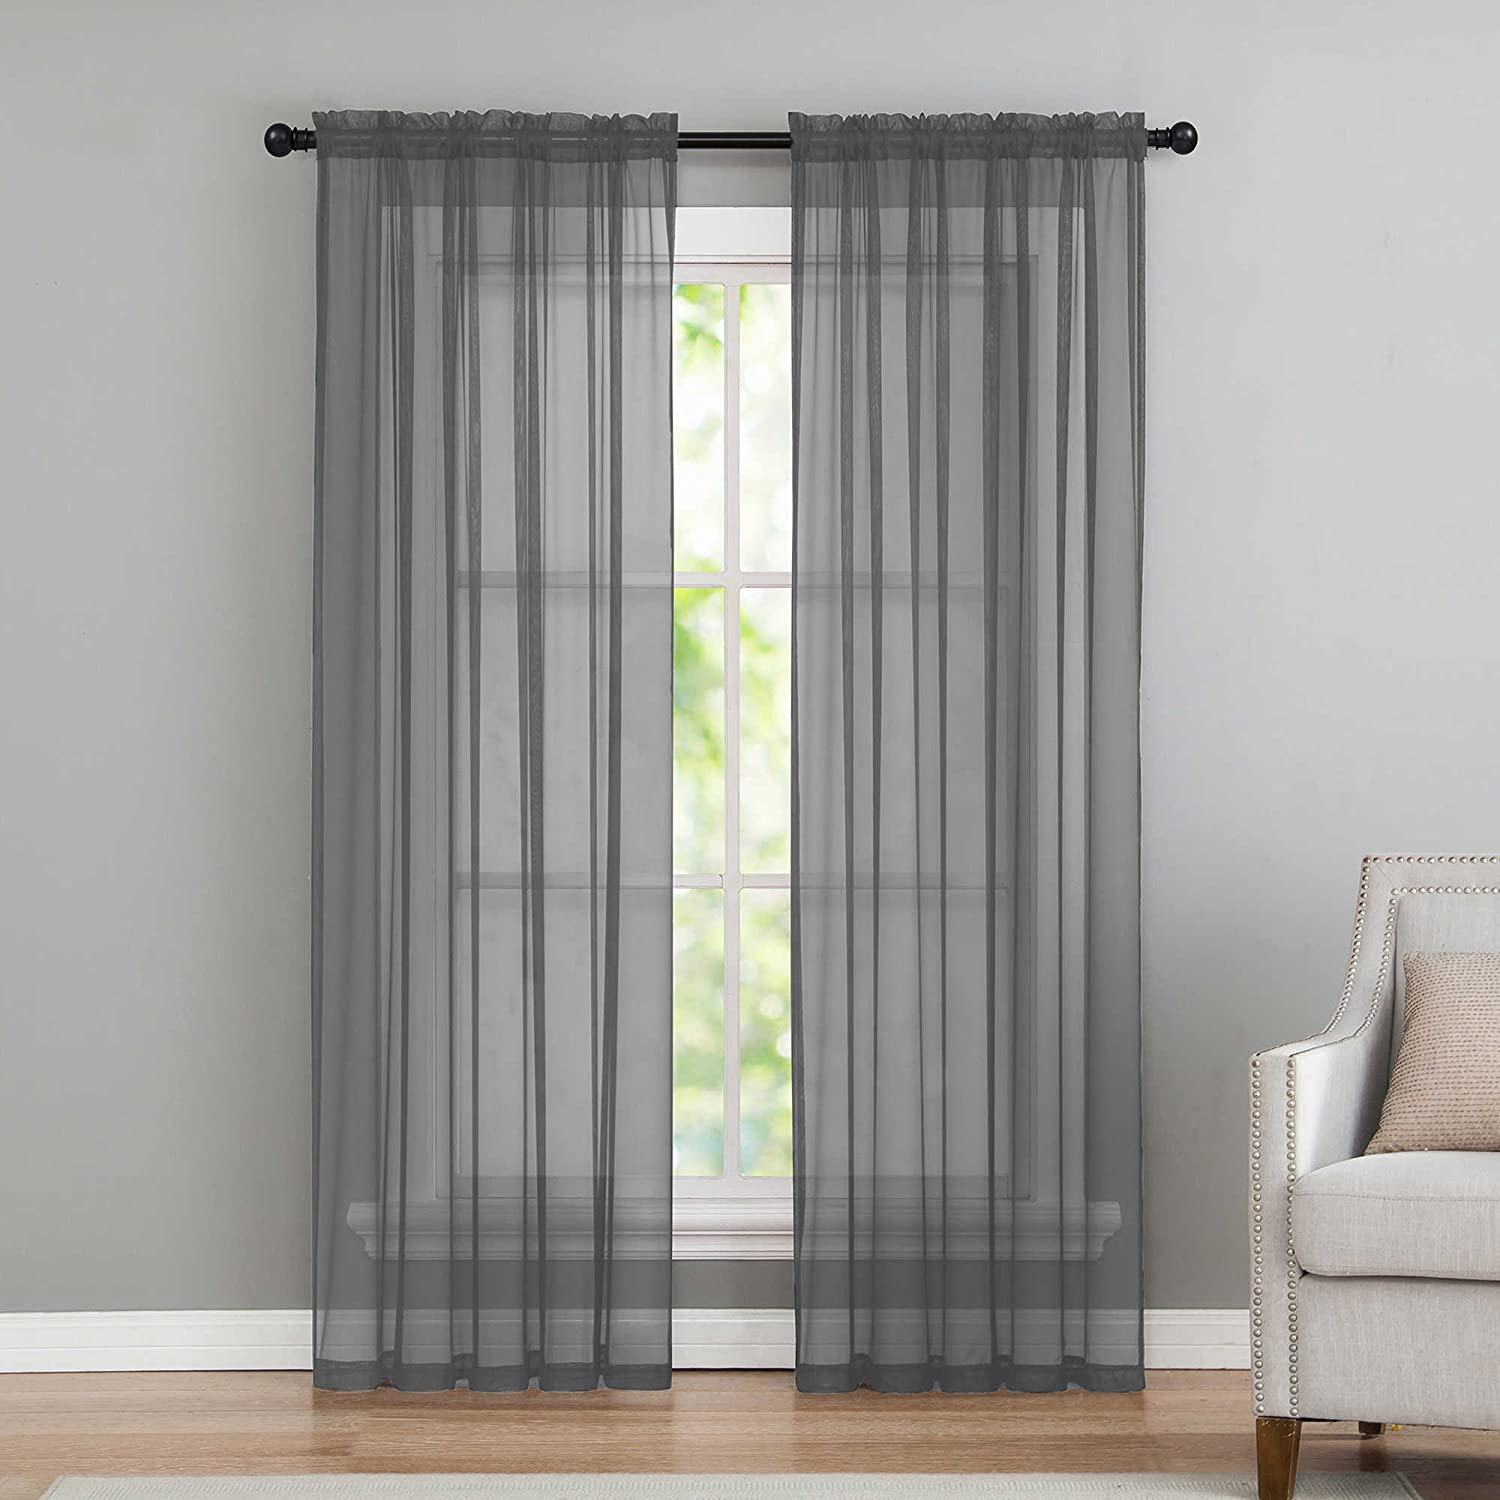 Sheer Voile Window Curtains by GoodGram - Assorted Colors (Dark Grey